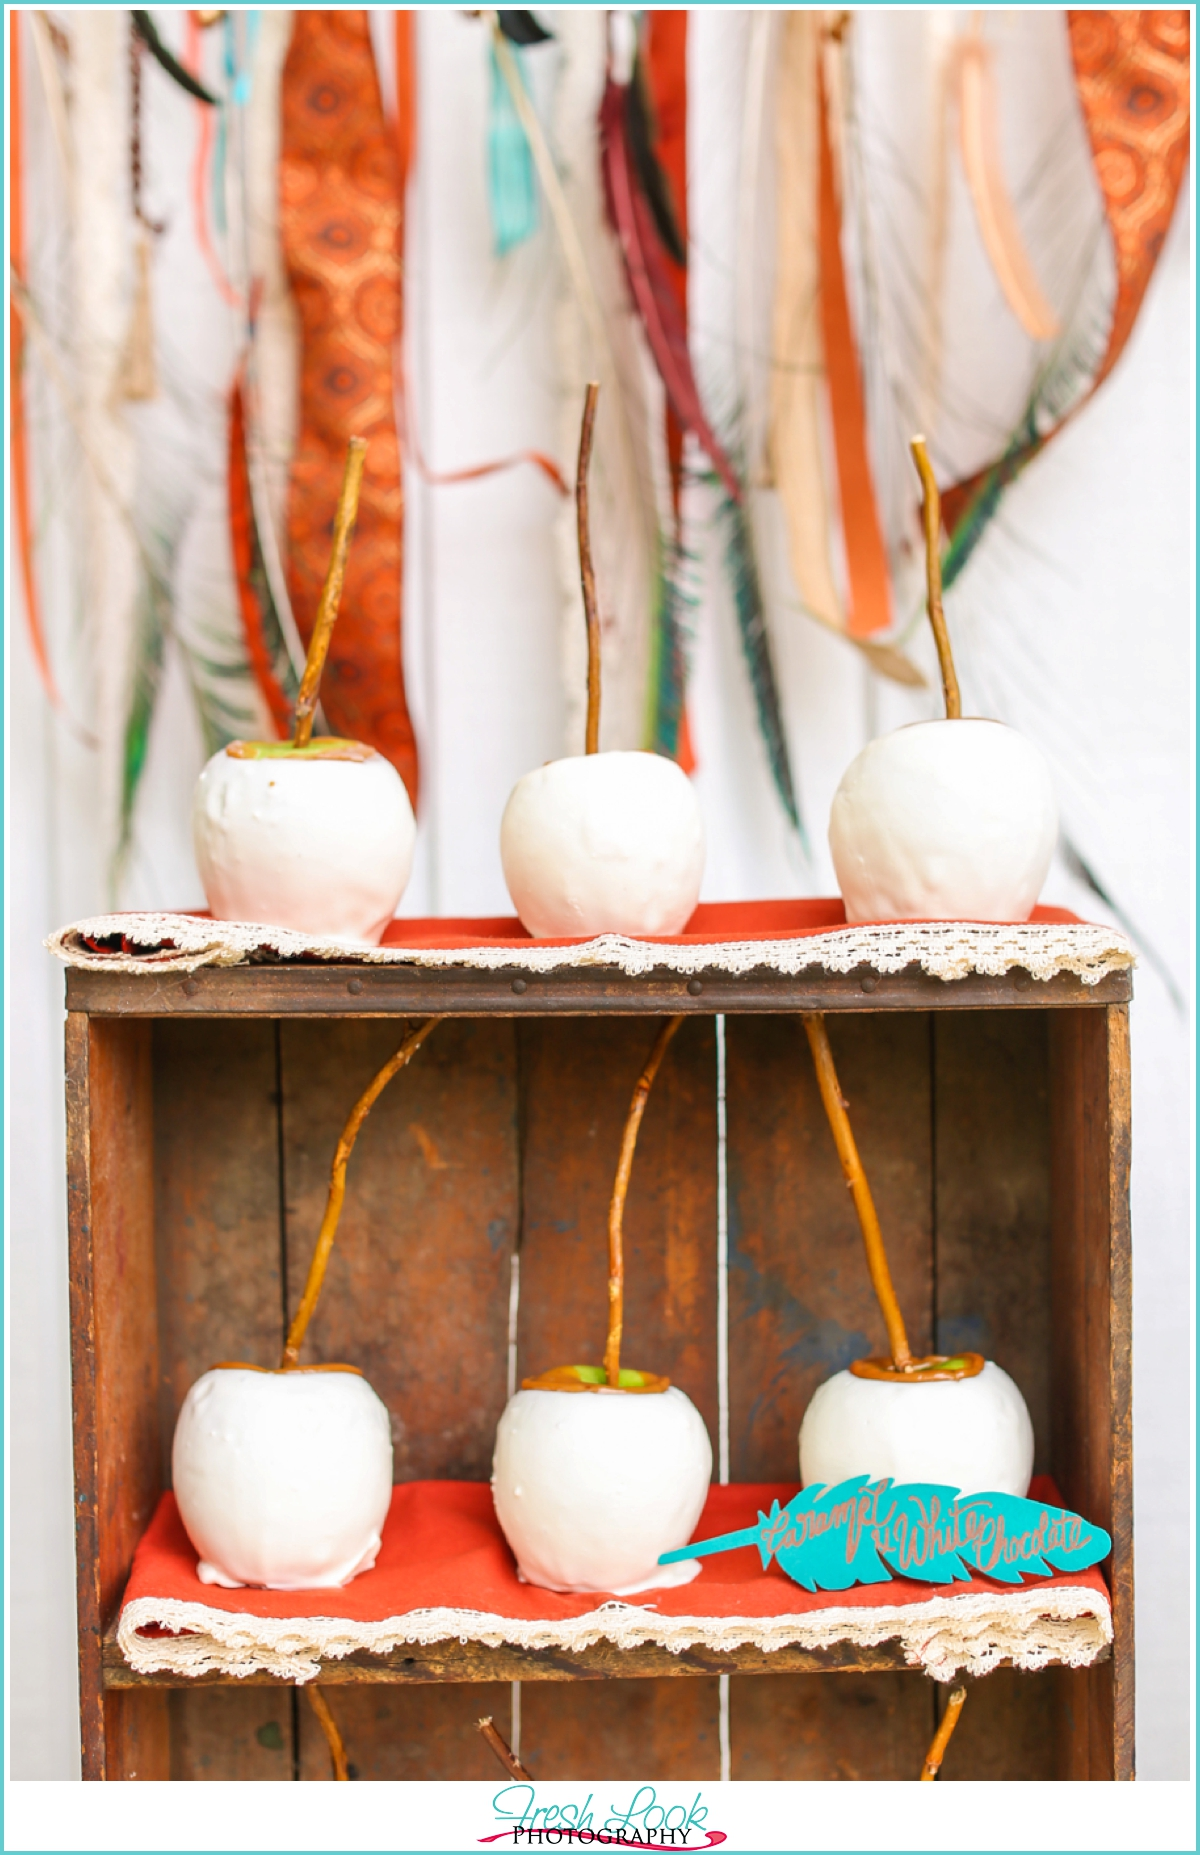 white chocolate covered apples